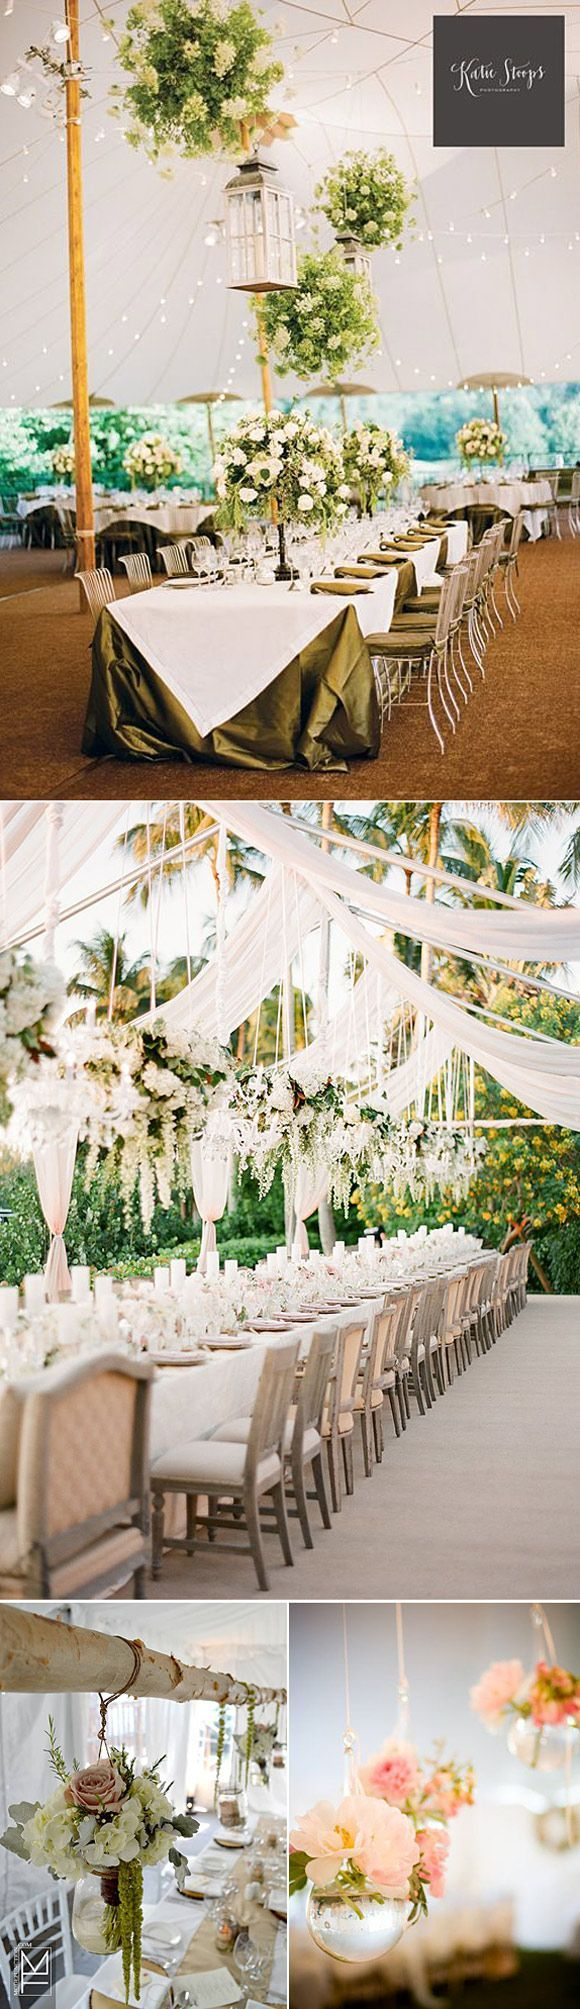 ideas para decorar la carpa el da de tu boda